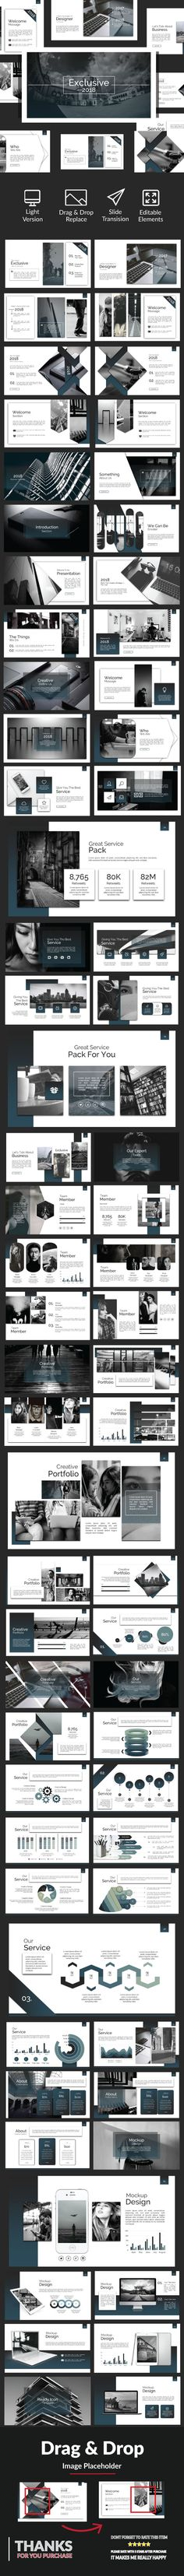 Experience #Google #Slide - Google Slides #Presentation Templates. Ultimate colorful style 70+ Unique slides Including portfolio Including team members etc. Very cool Very easy to customize Including mock-ups Images Placeholder Drag and Drop Image Clean, modern, multi-purpose design can be used for any type of presentation Professionally designed slides Strong focus on typography and usability.